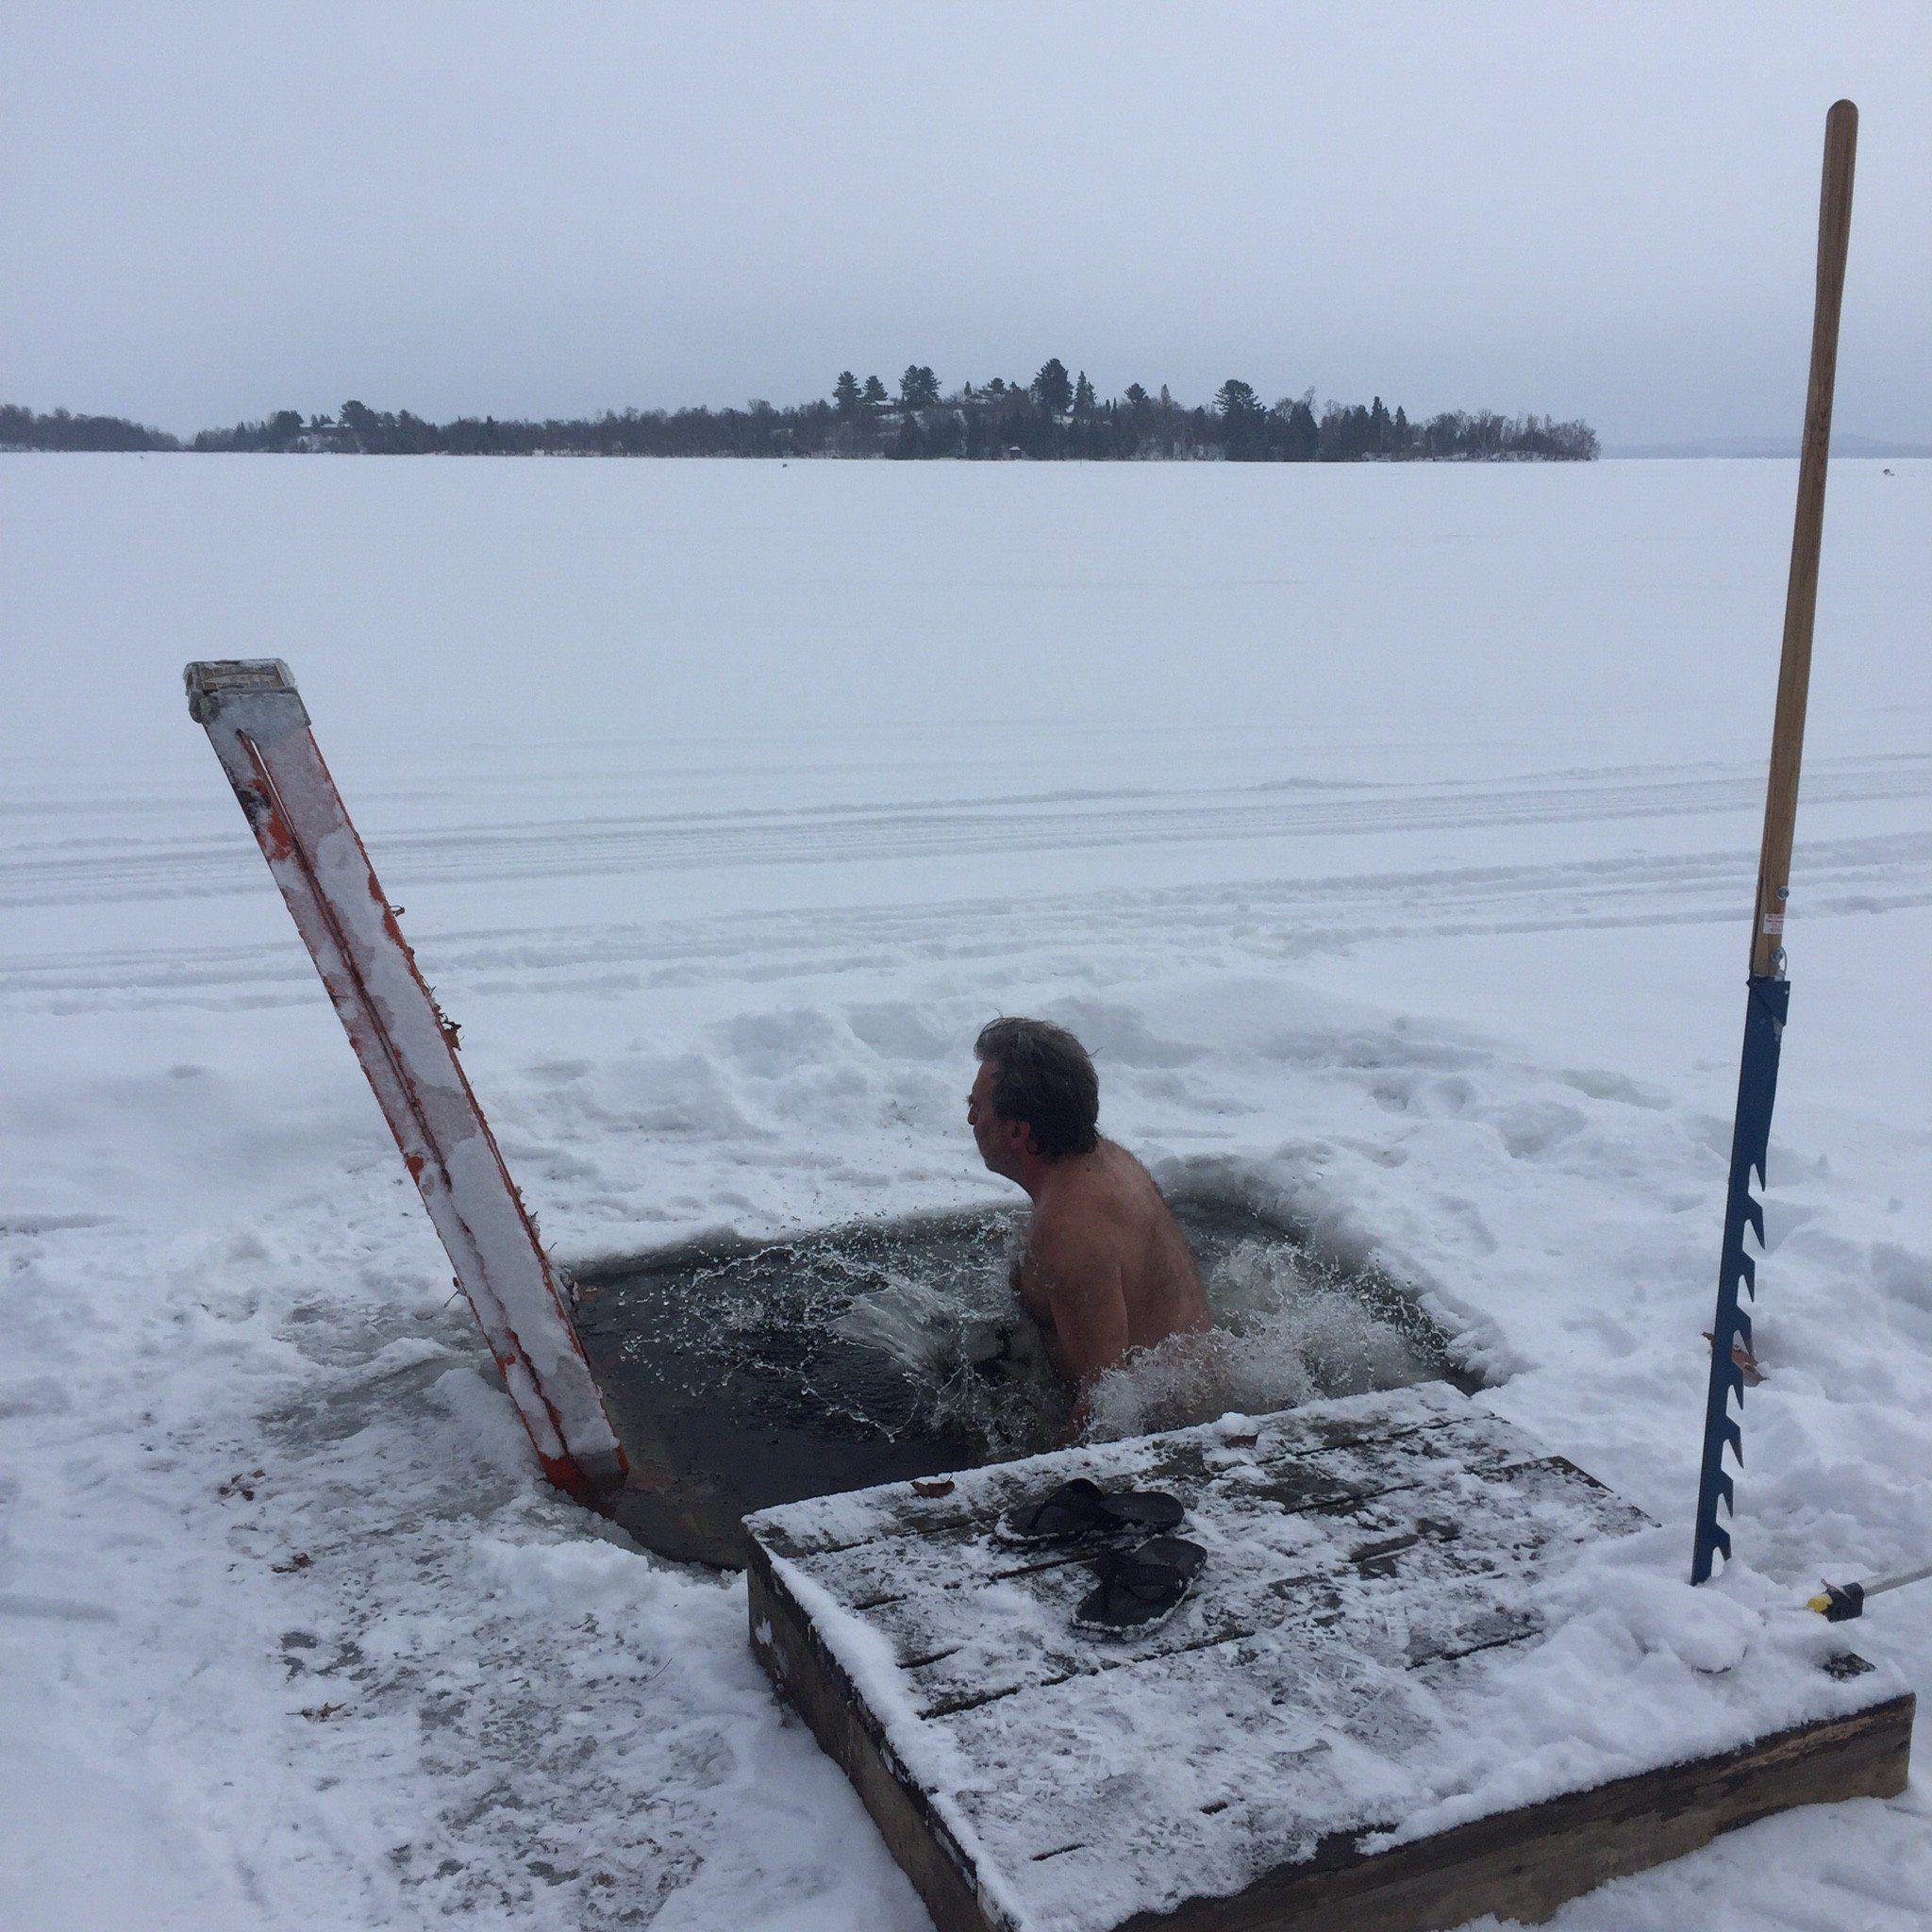 it helps to psyche oneself up with voices in your head when doing the ice plunge